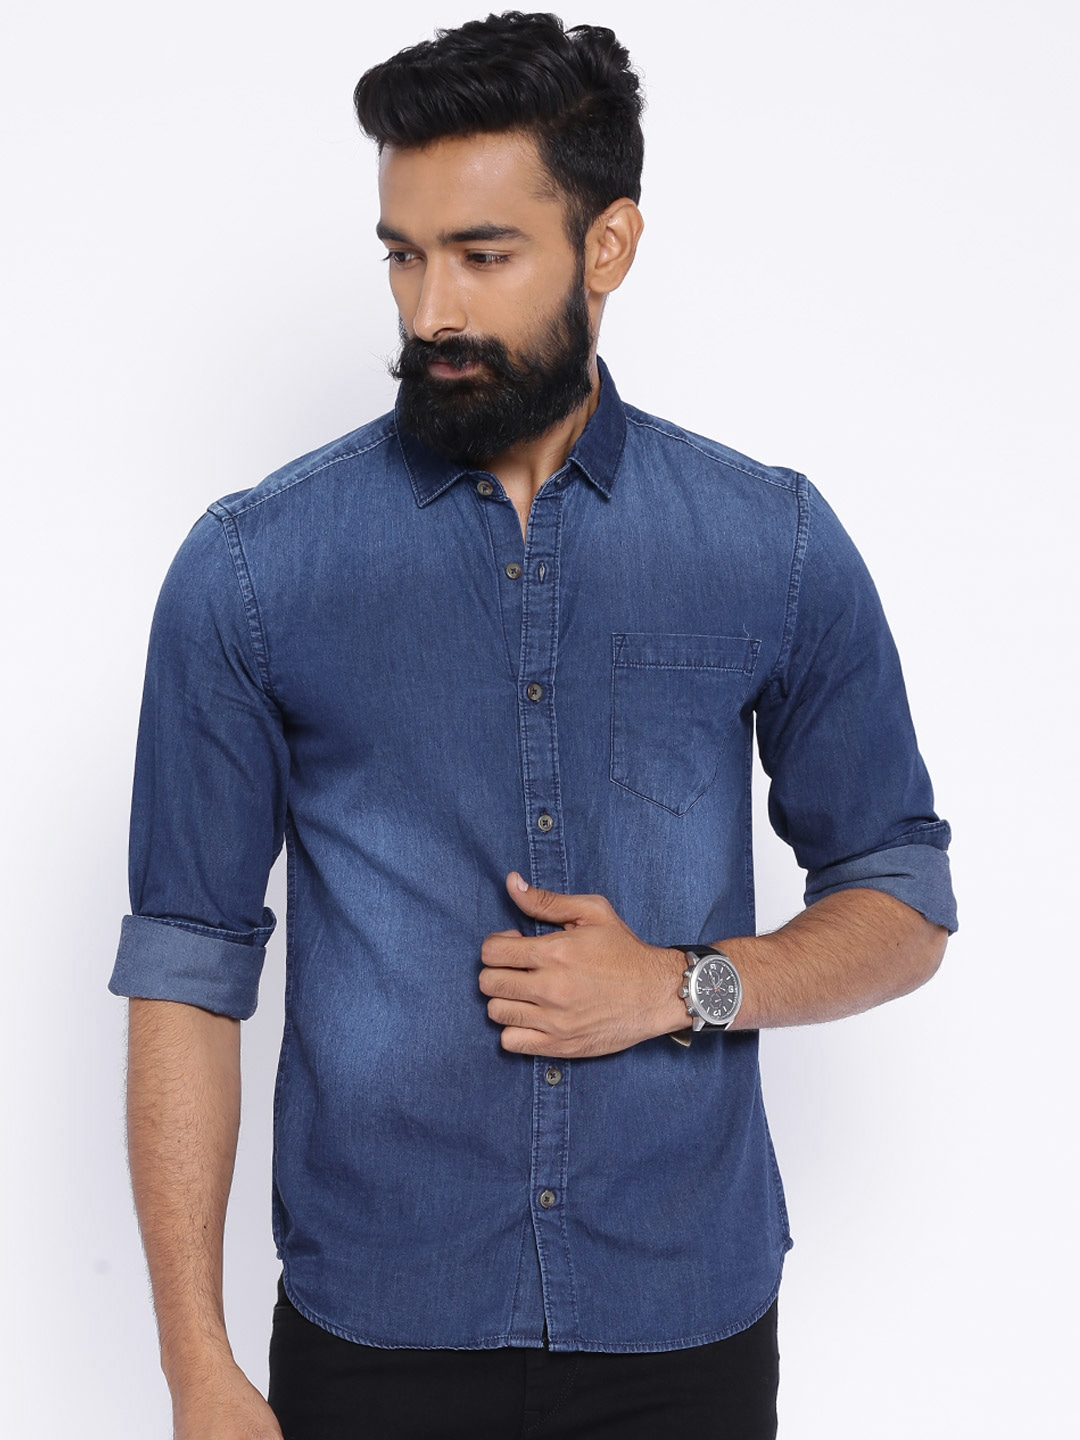 Shirts for Men - Buy Casual Shirts For Men Online in India